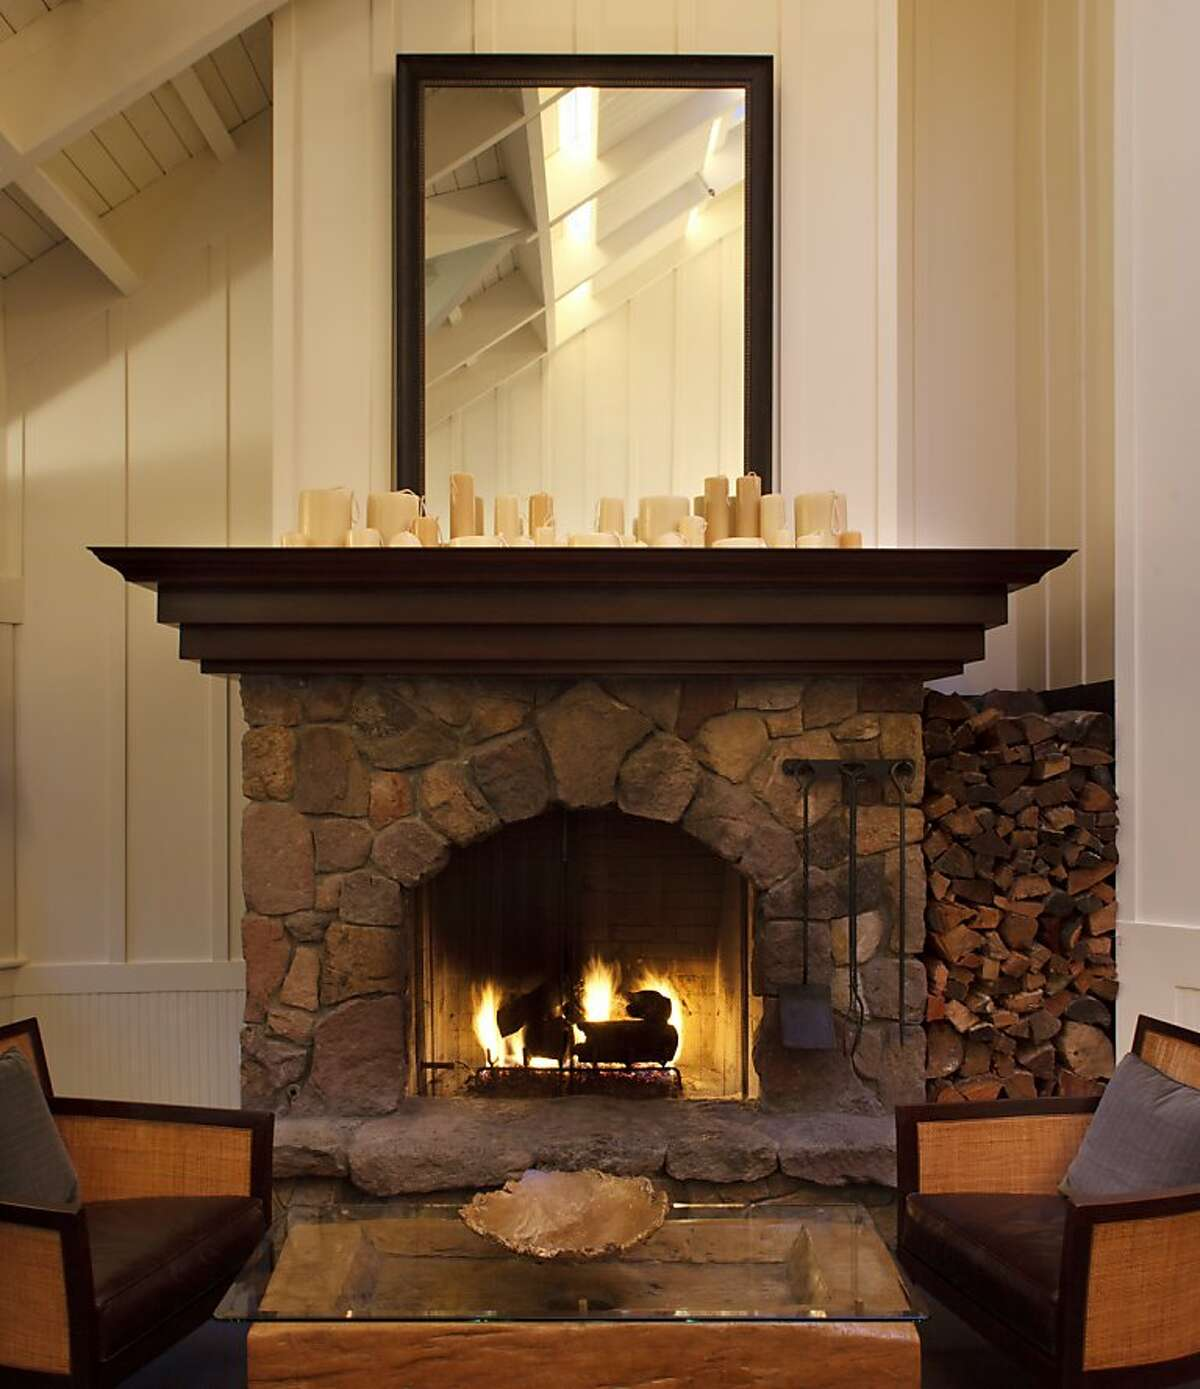 Fireplace in the bar/lounge of the Meadowood Resort restaurant.